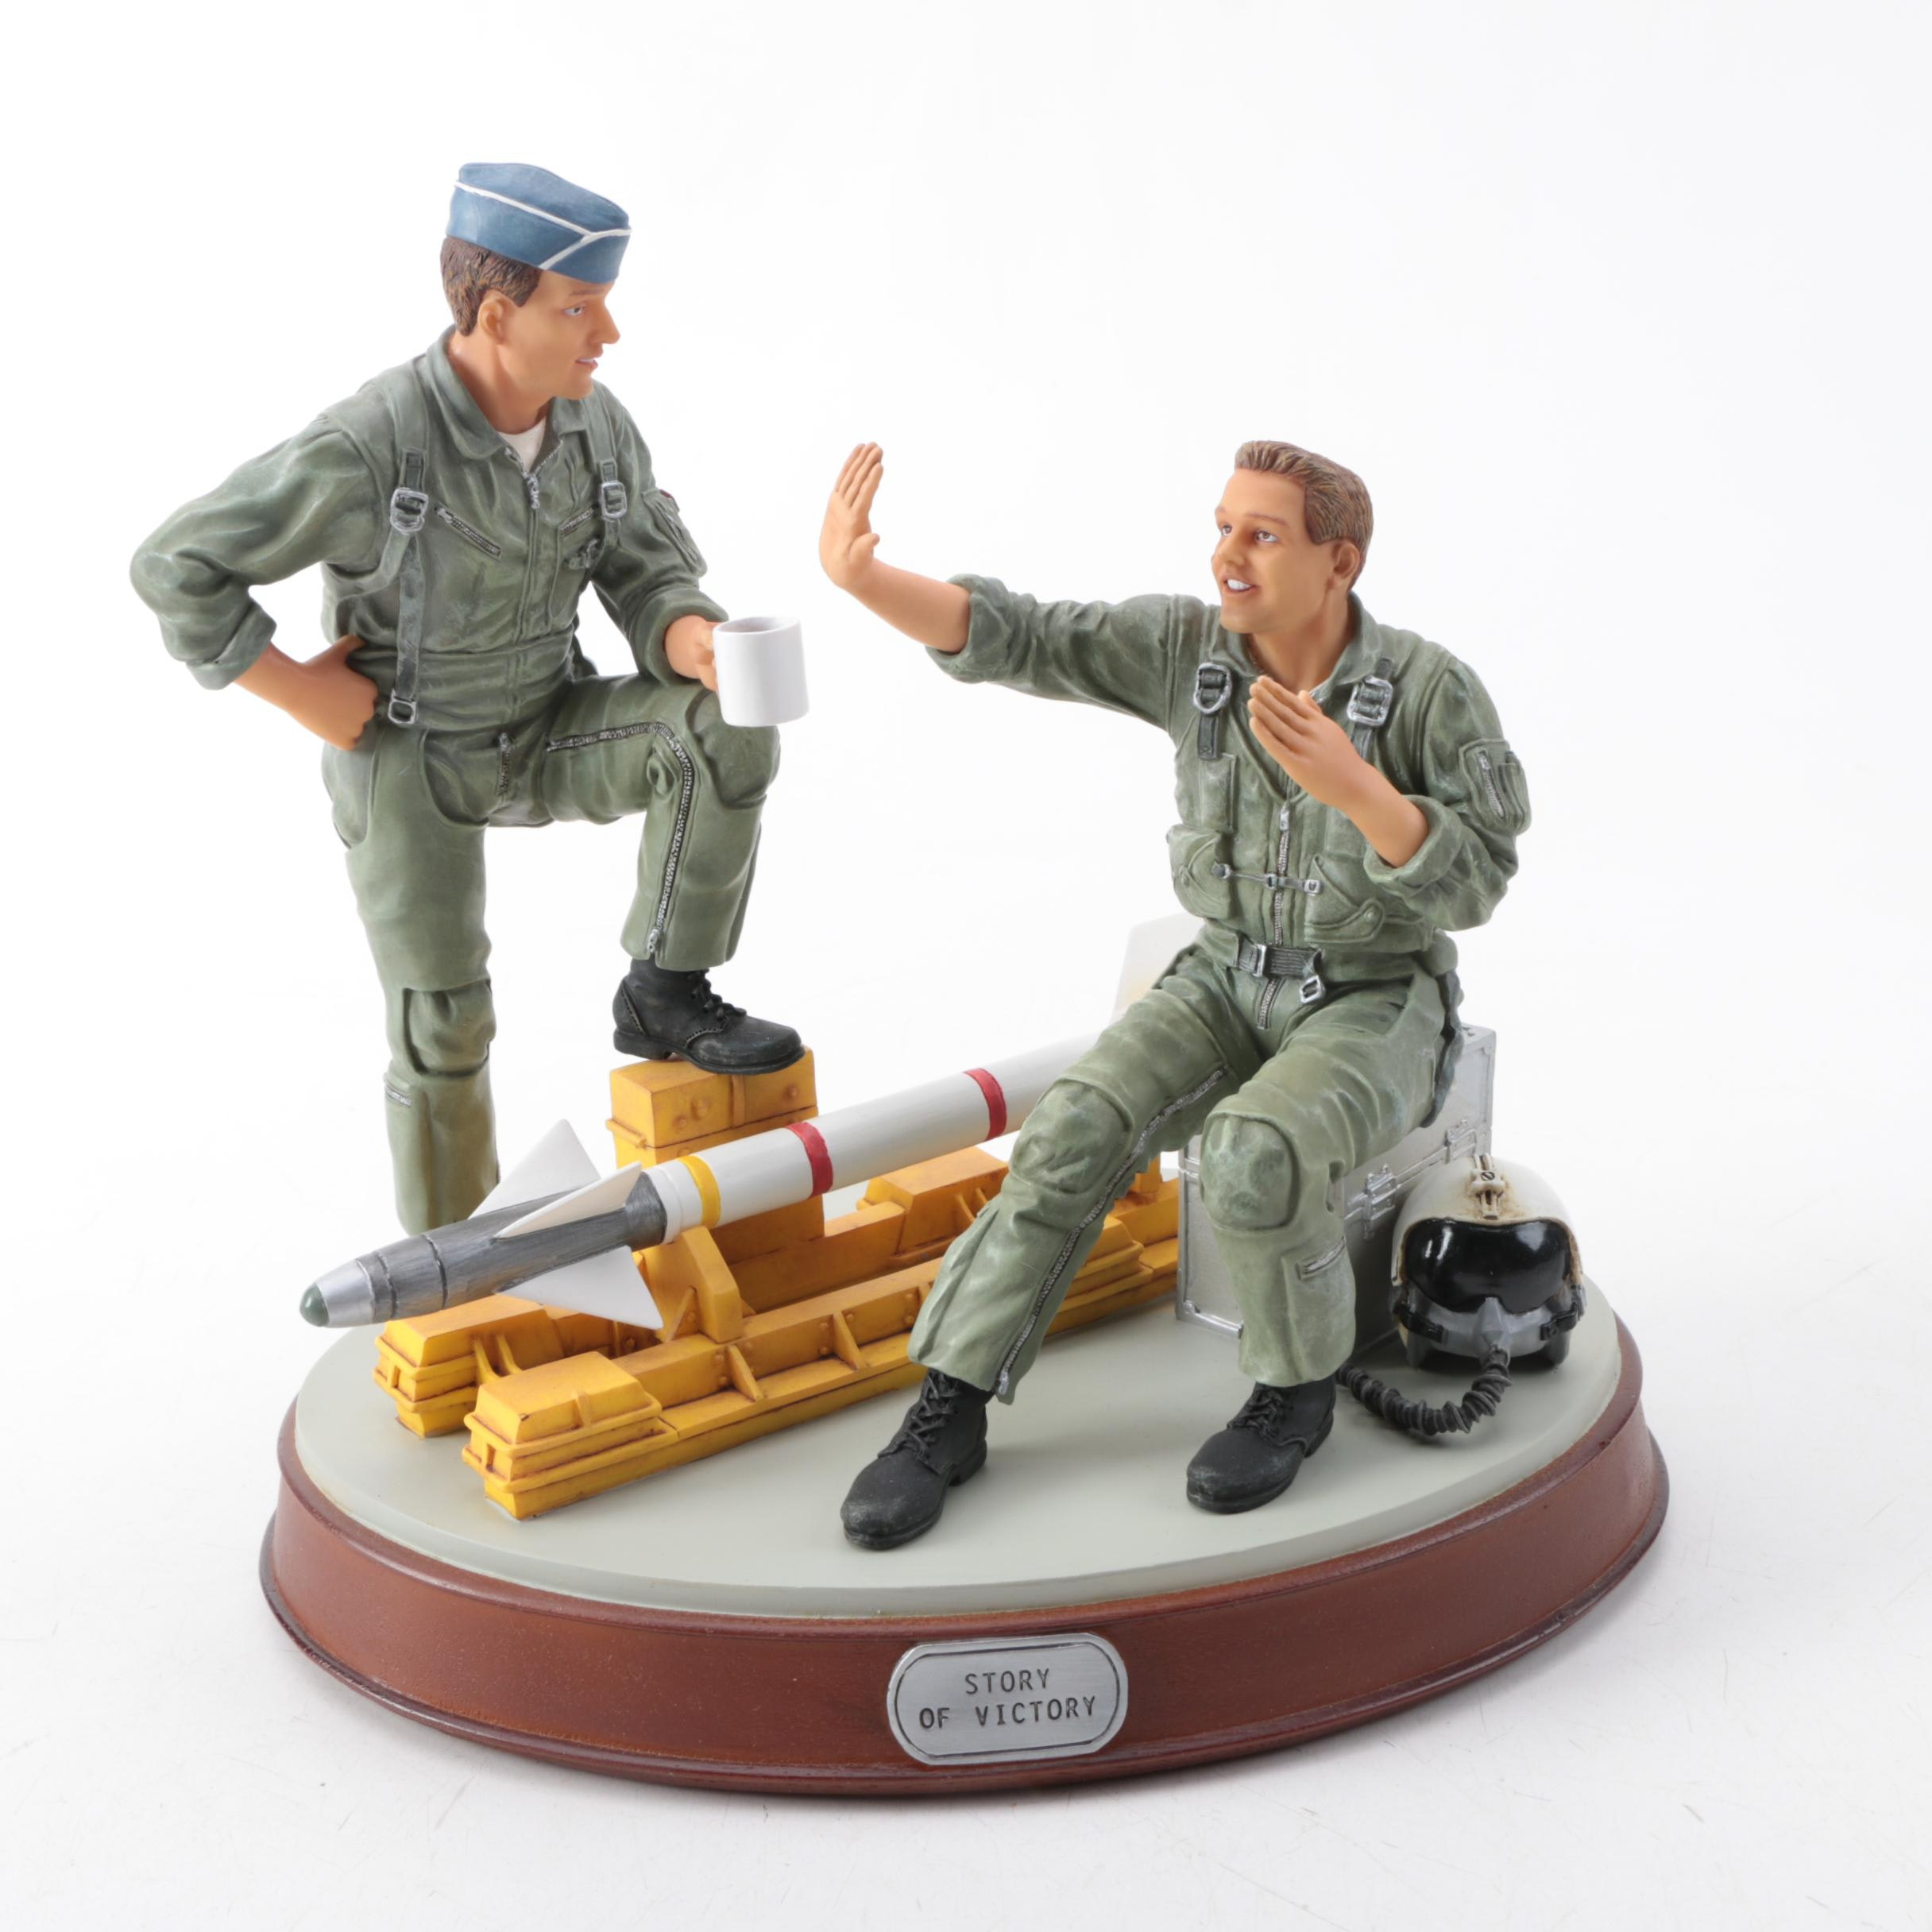 """G.I. Joe Unforgettable Military Moments Resin Sculpture """"Story of Victory"""""""